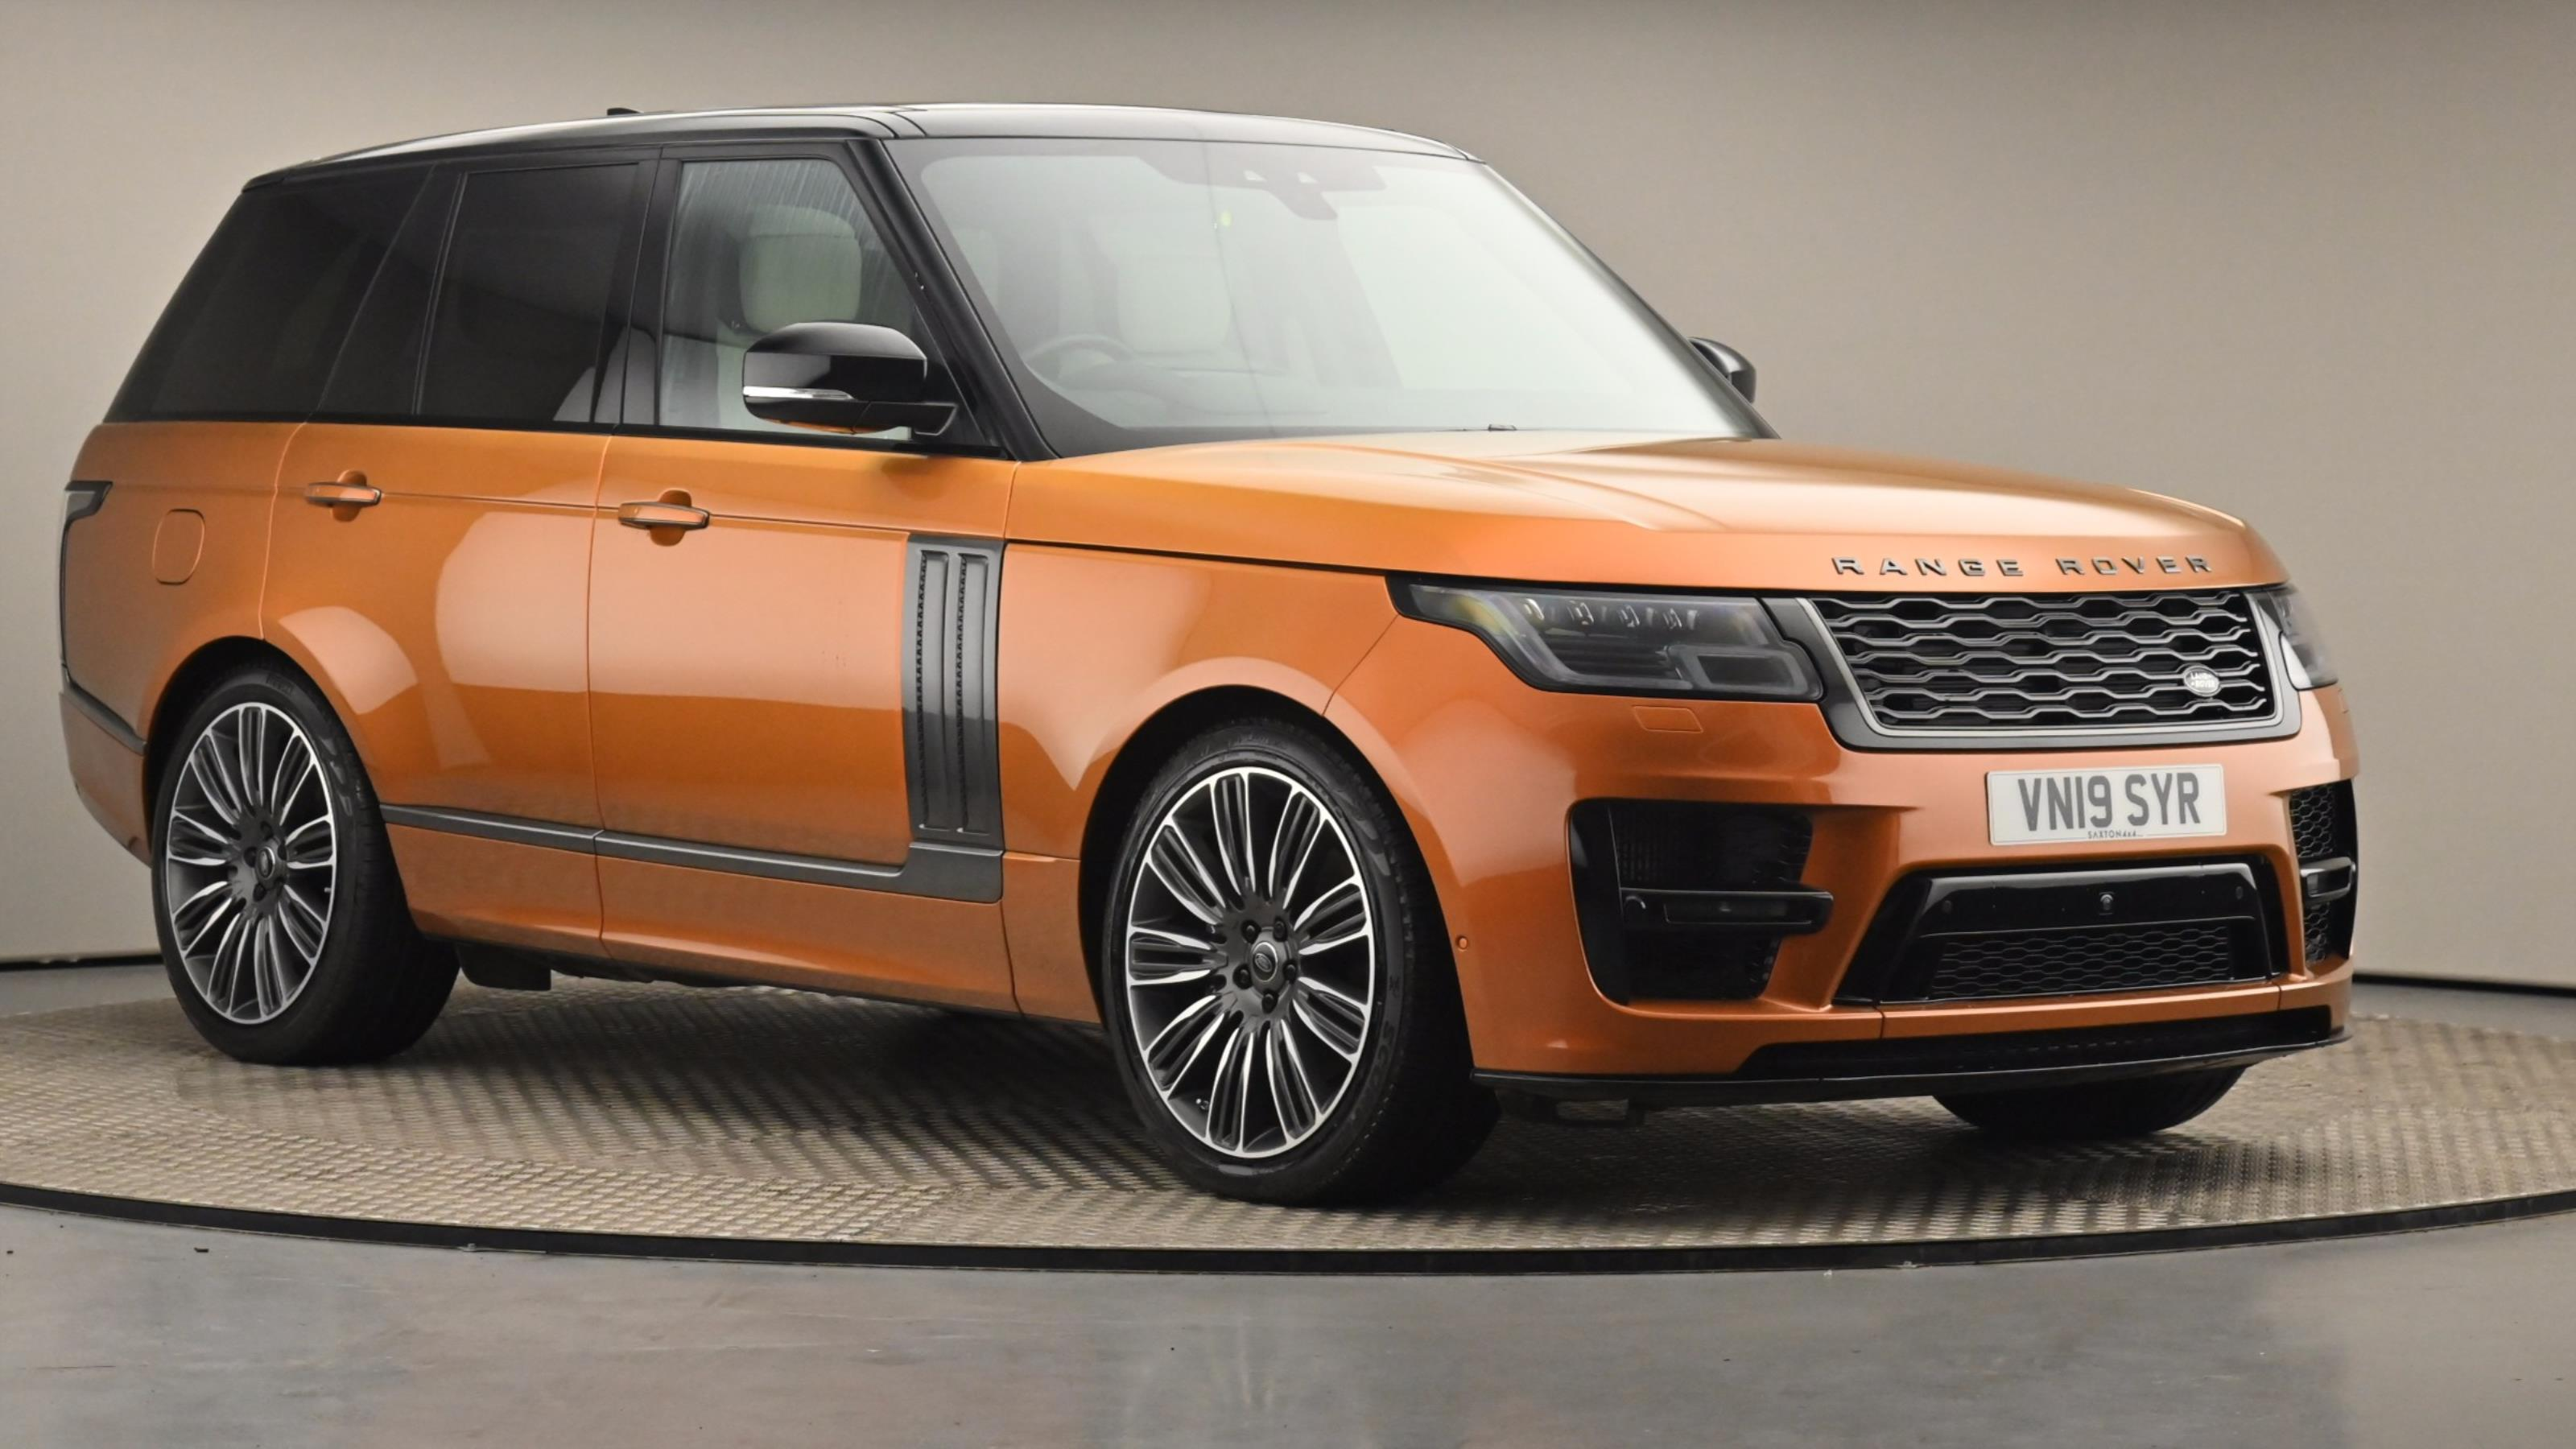 Used 2019 Land Rover RANGE ROVER 4.4 SDV8 Autobiography 4dr Auto ORANGE at Saxton4x4